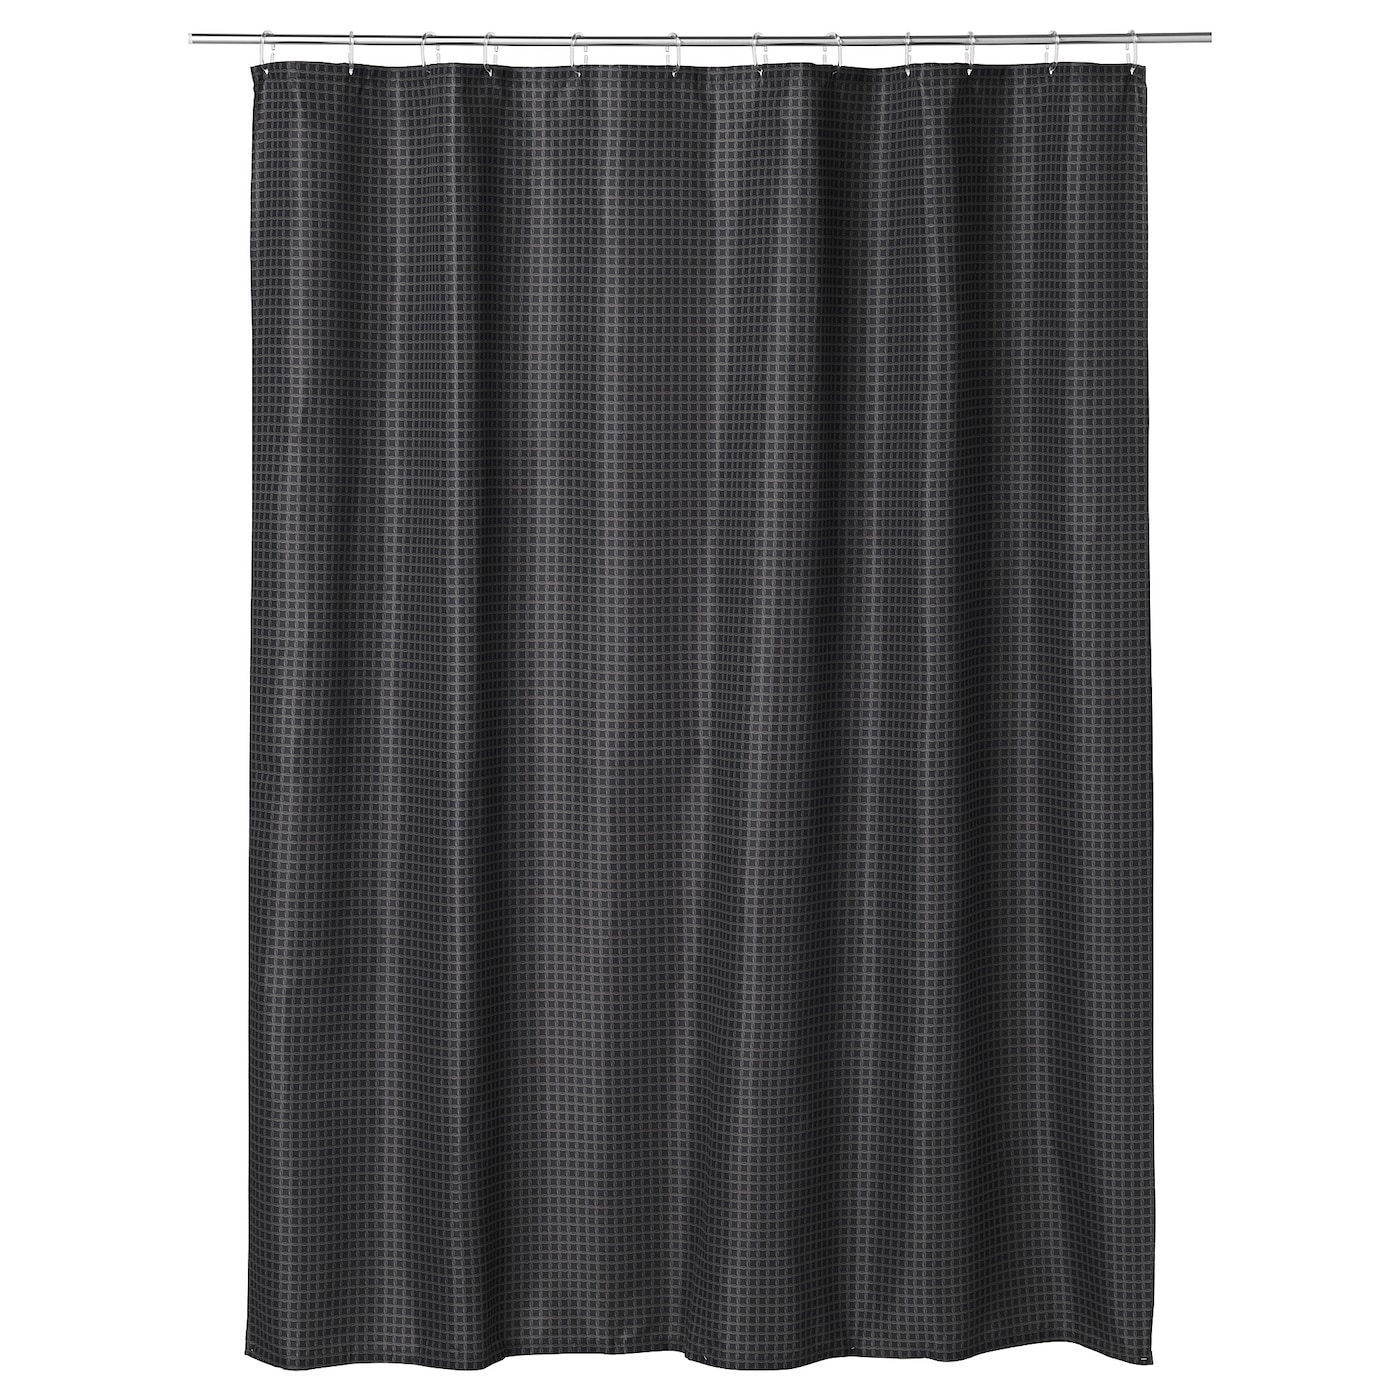 wholesale dealer 6dca4 5cf45 IKEA SAXÄLVEN shower curtain Densely-woven polyester fabric with  water-repellent coating. Zoom In